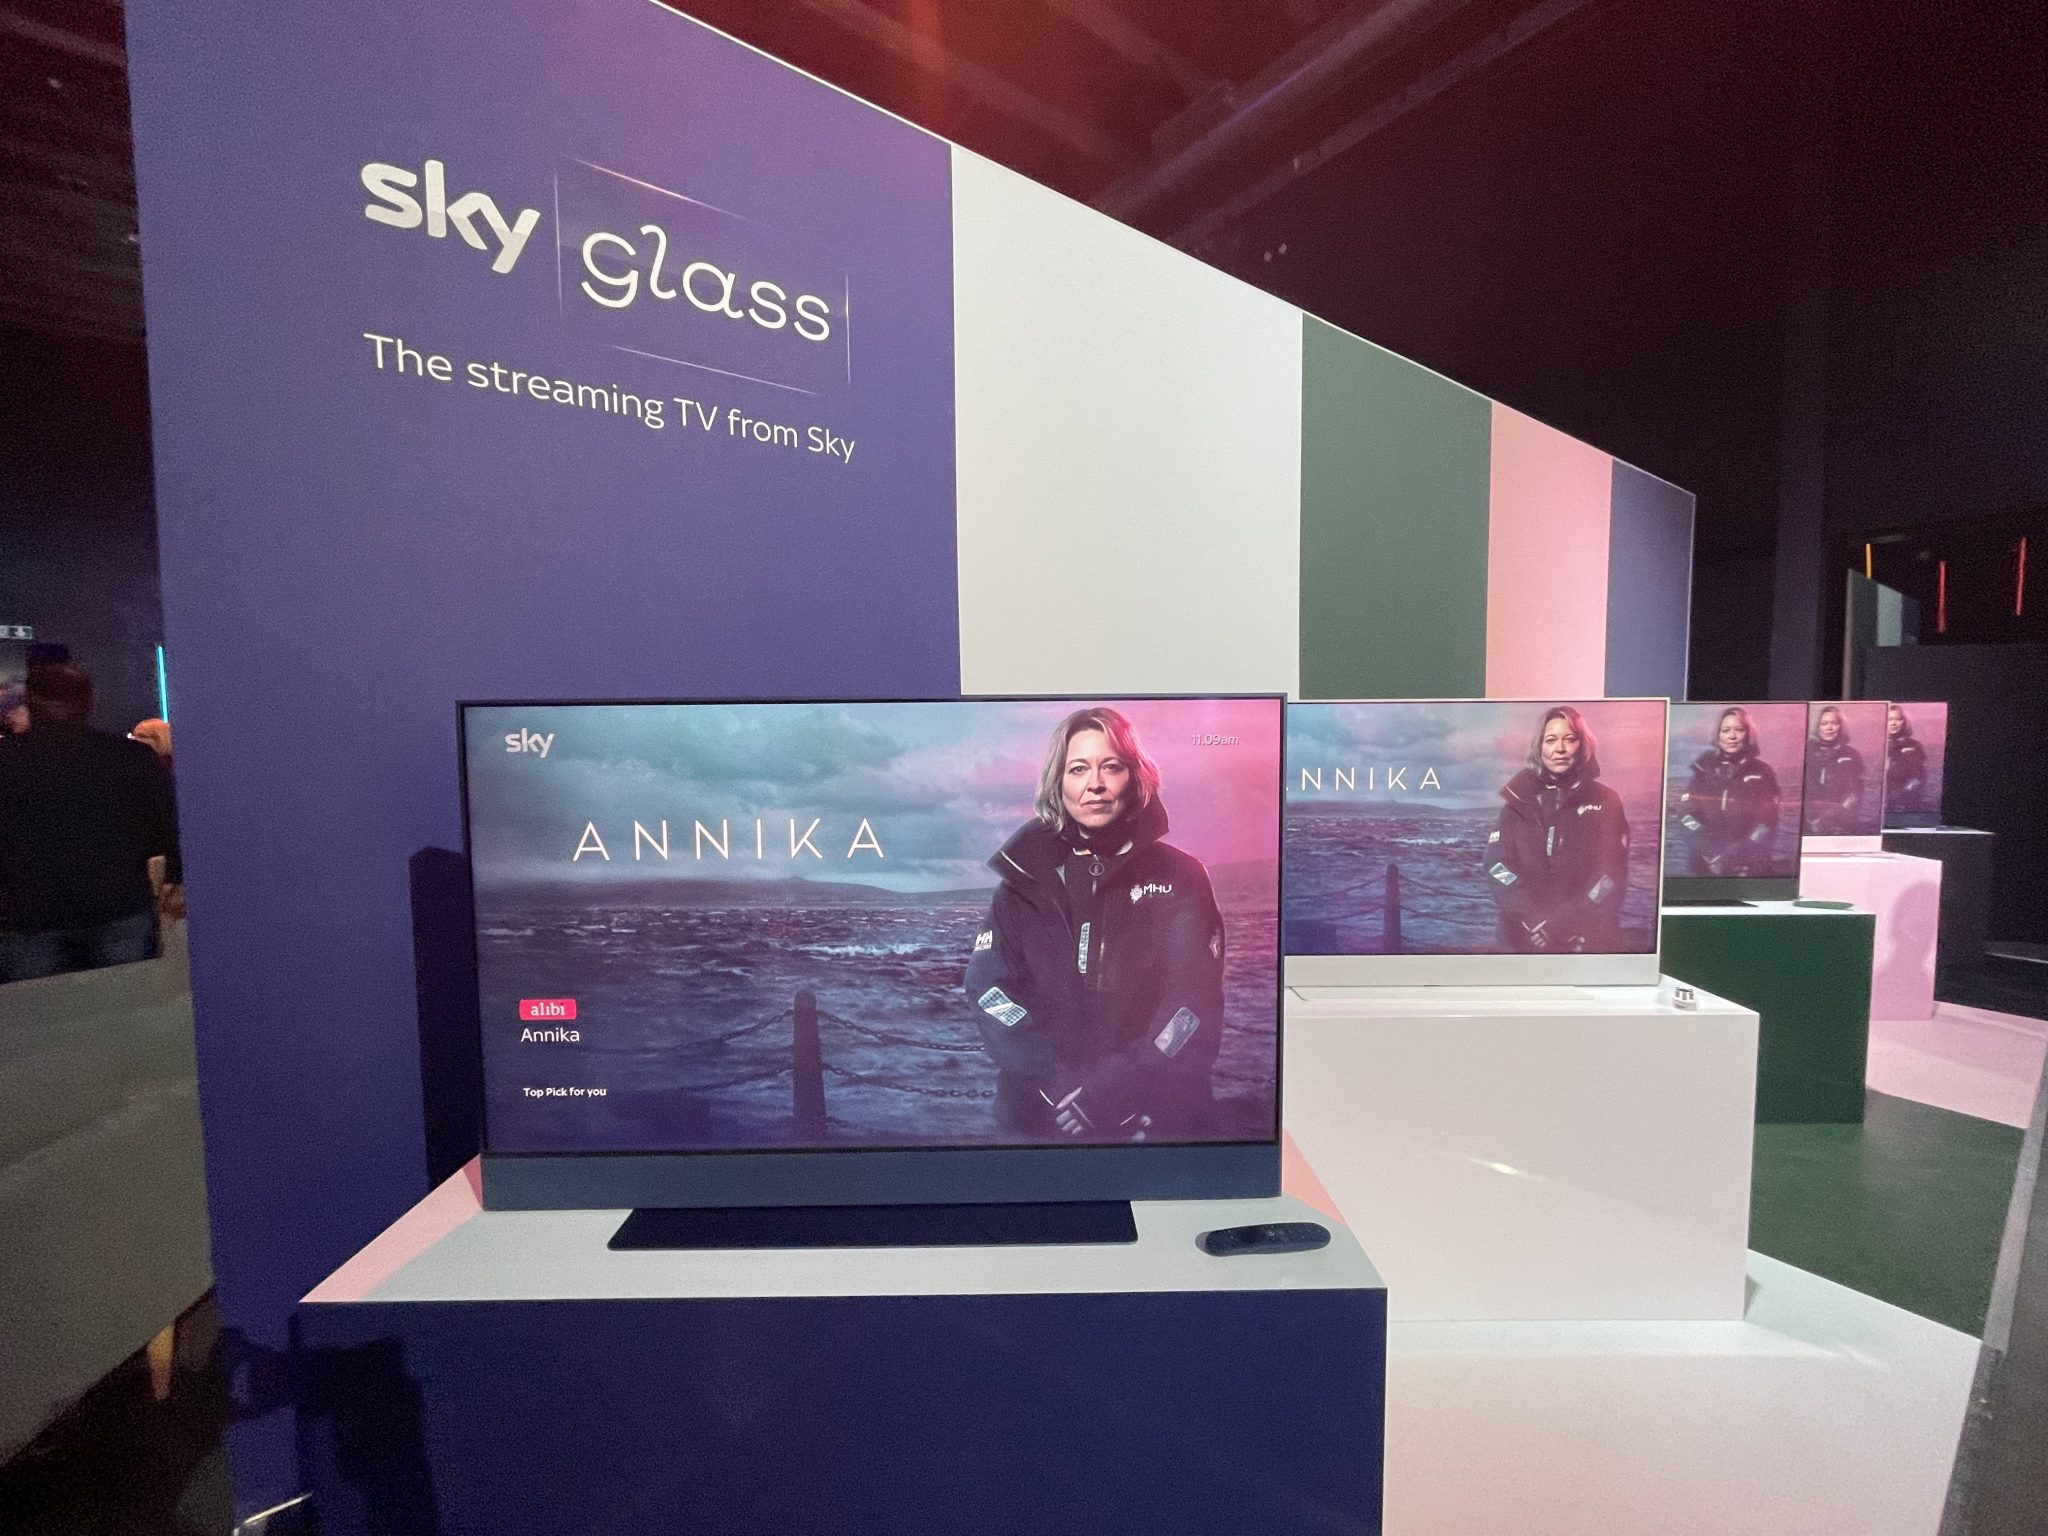 Louis. but i did my first reporting in the sooner state, the story that got me my job at nbc.. Inside the Sky Glass launch event - Digital TV Europe